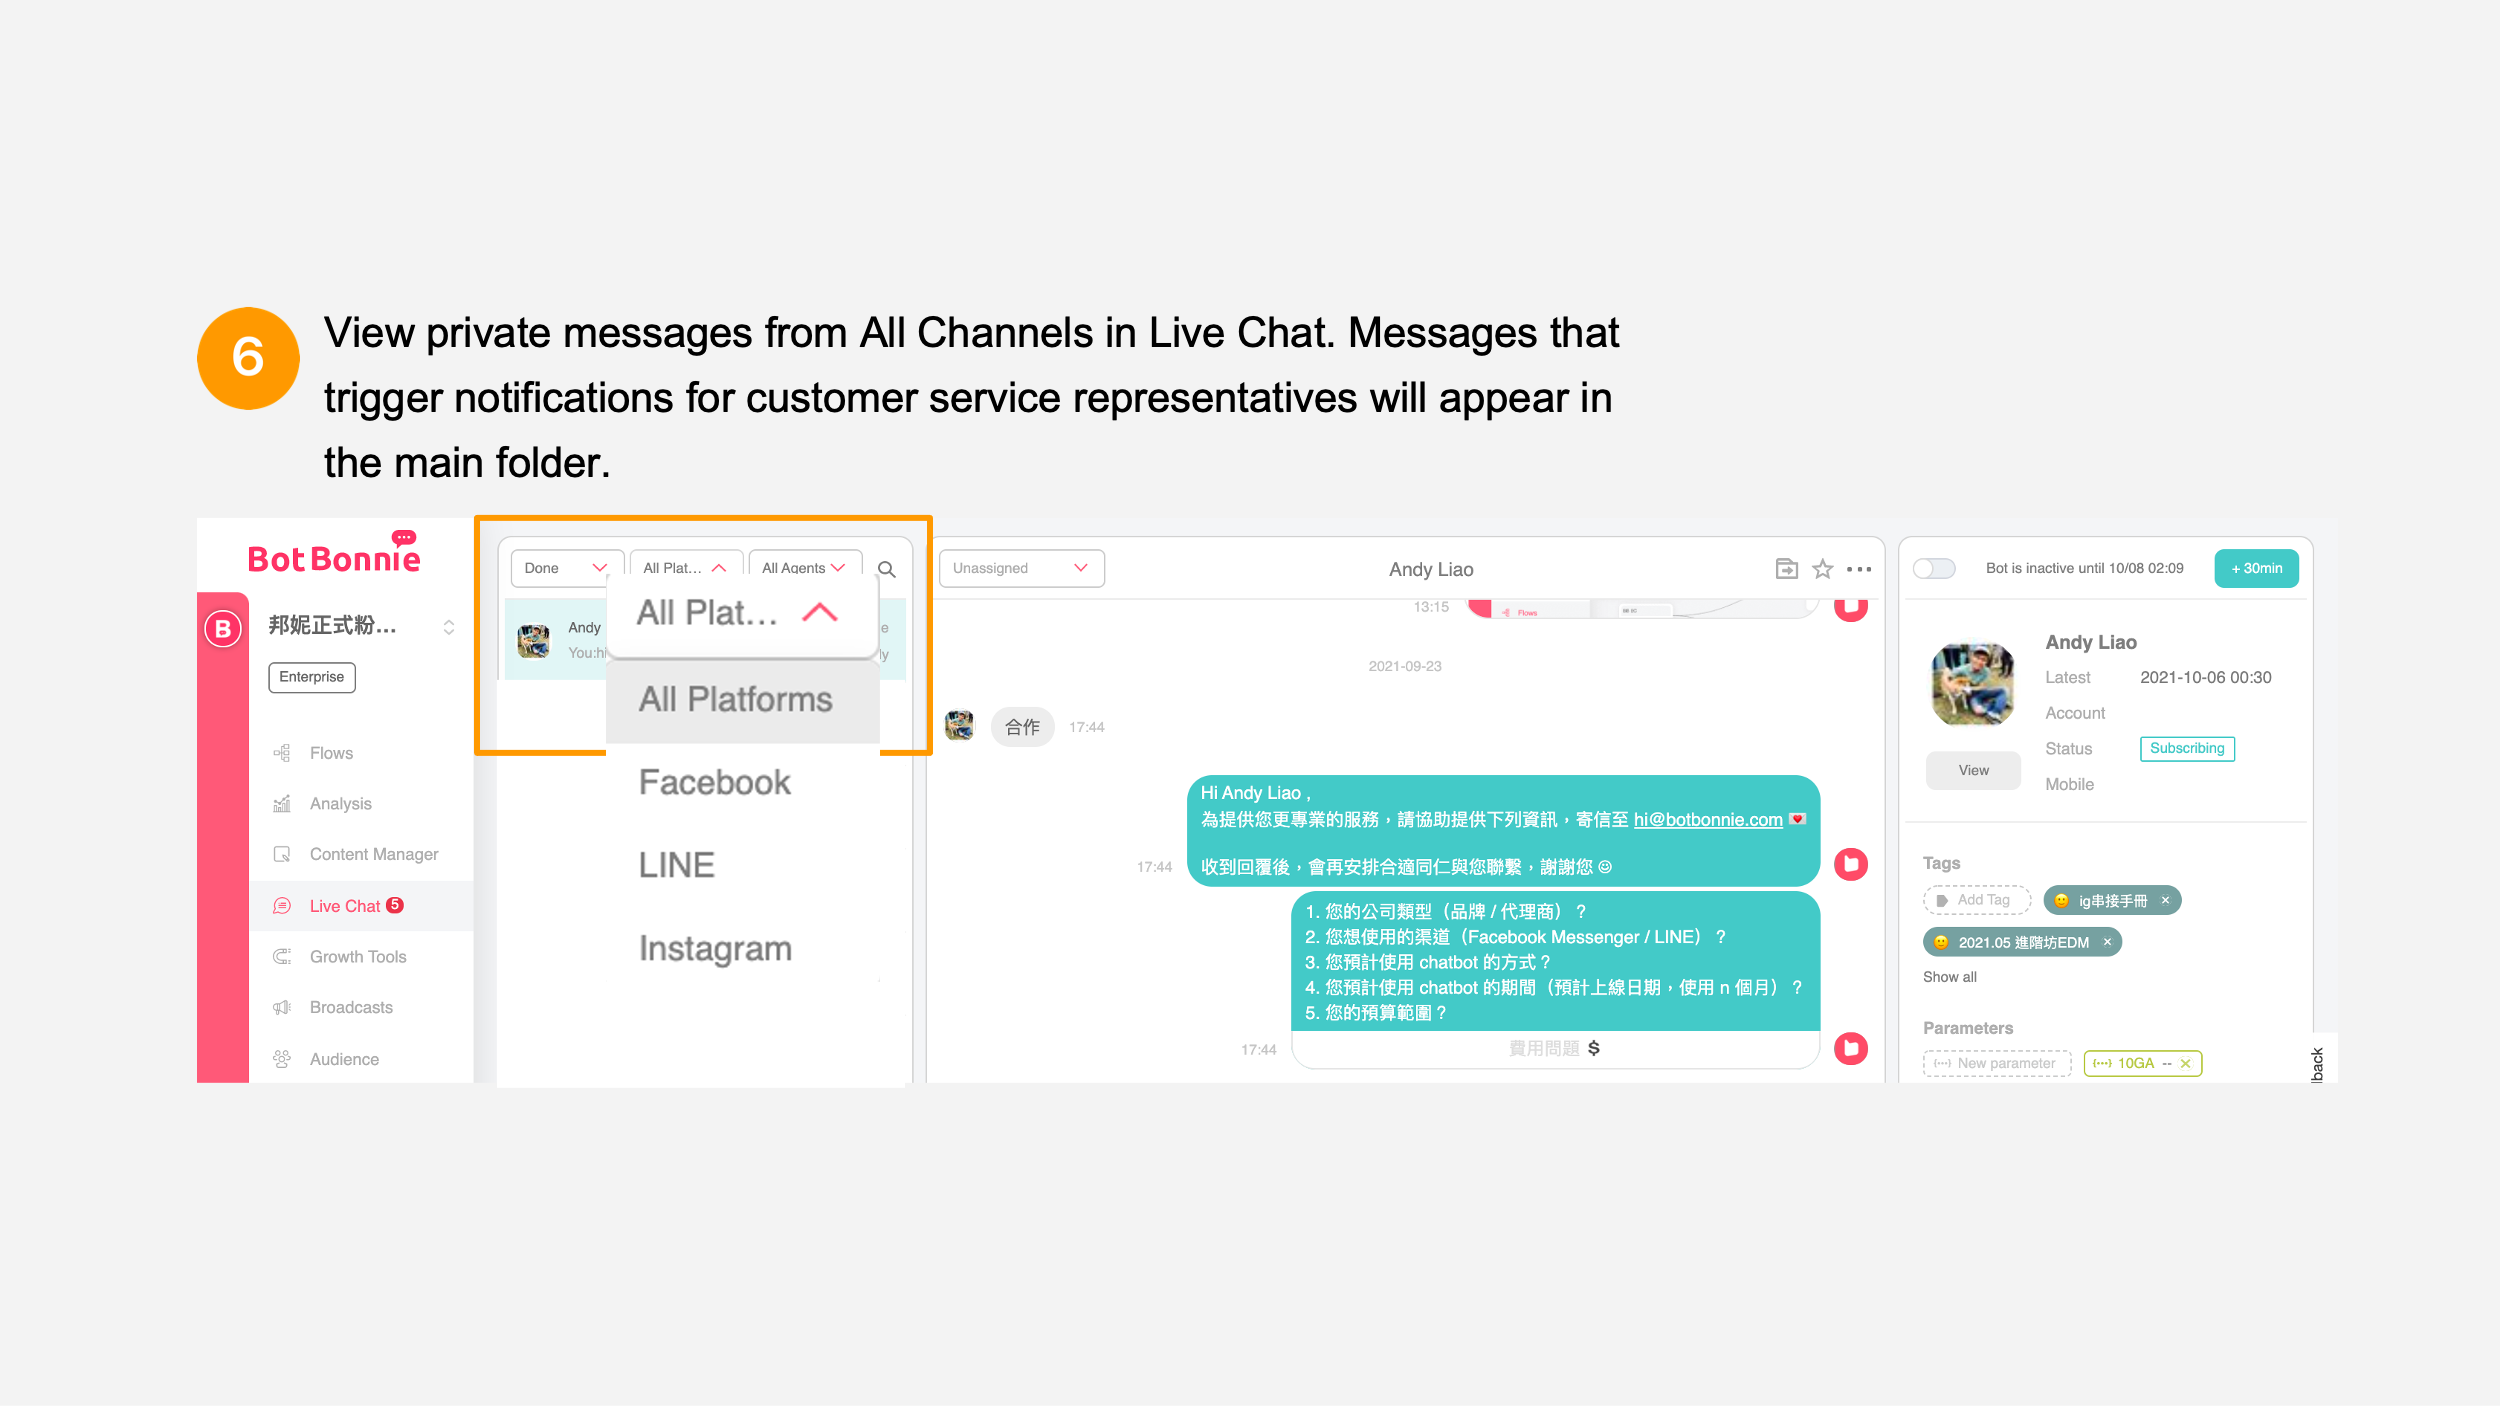 View private messages in Live Chat